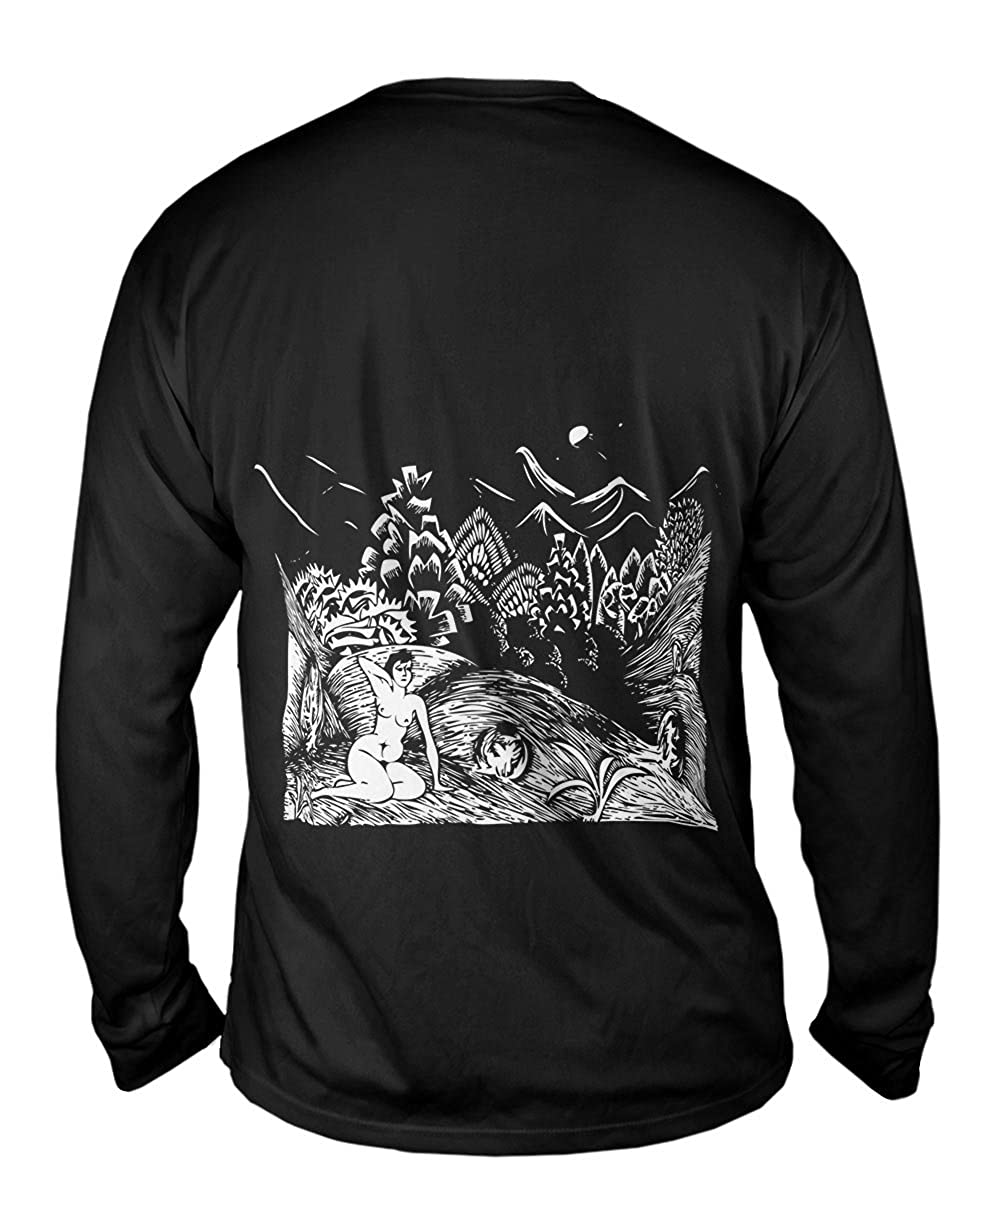 M.C.Escher Mens Long Sleeve 2009 Female Nude in a Lands Yizzam